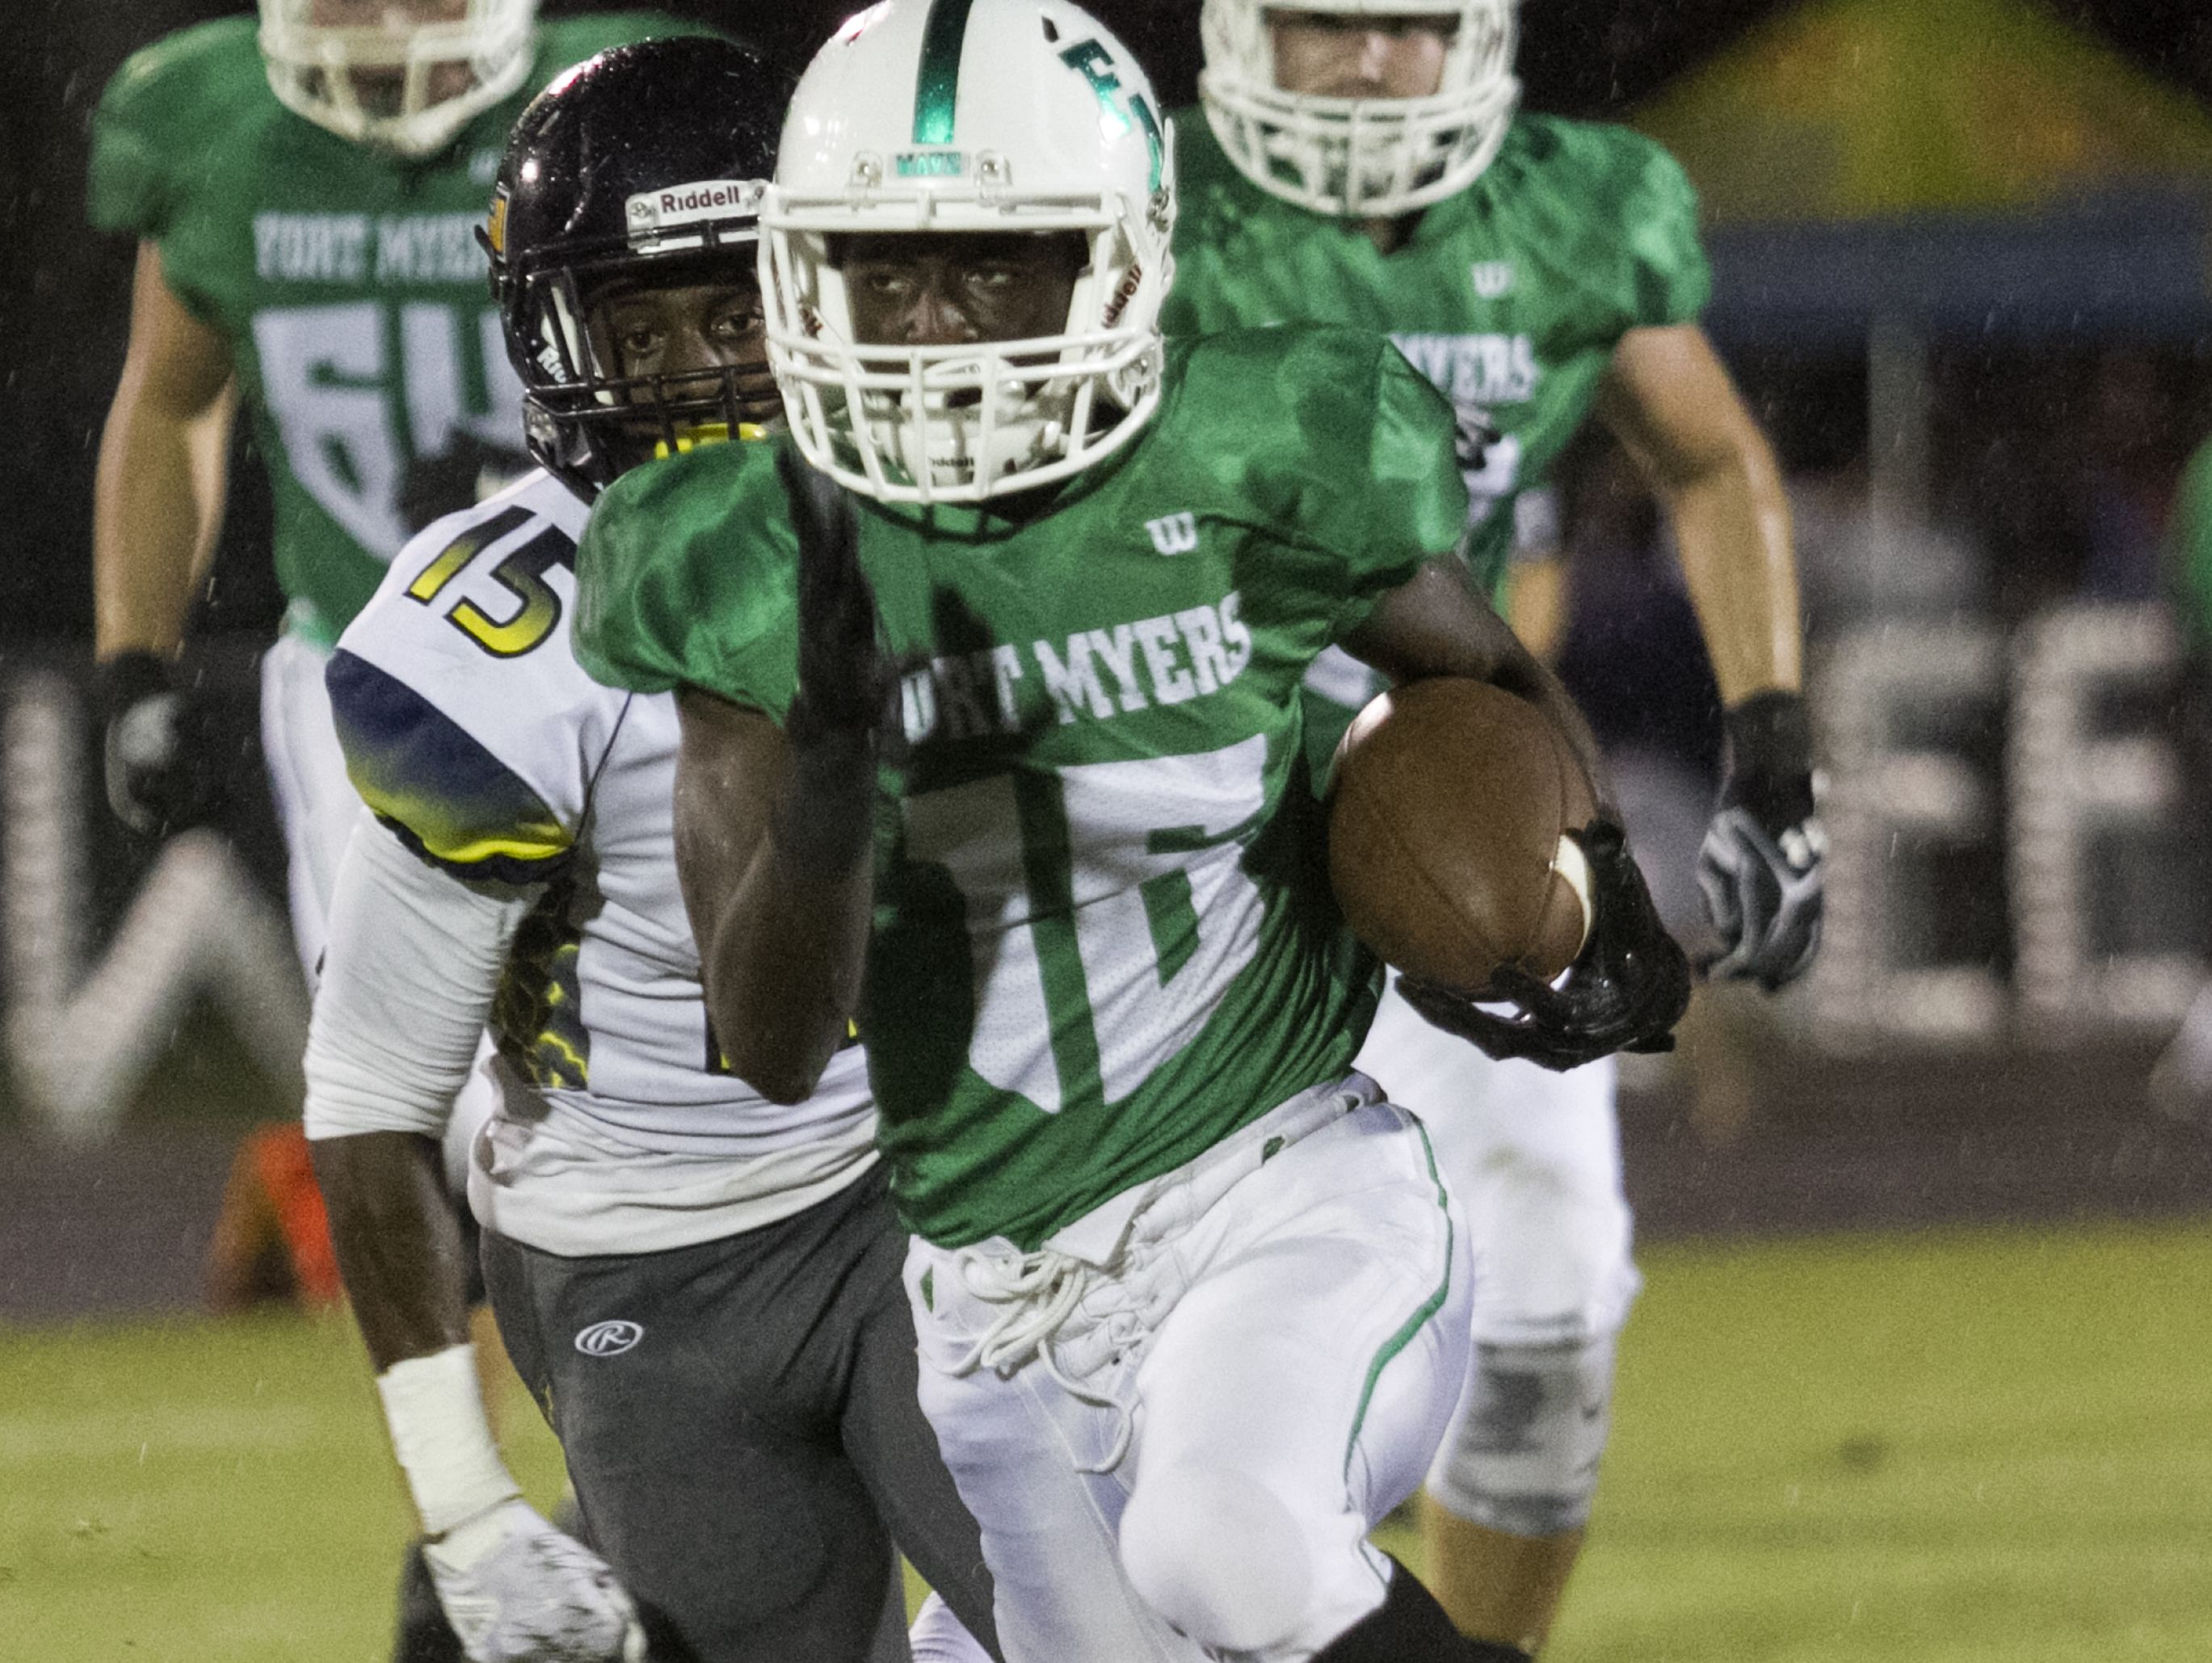 Yasias Young of Fort Myers is chased by Lehigh's Arthur Nance on Friday night at Fort Myers High School.